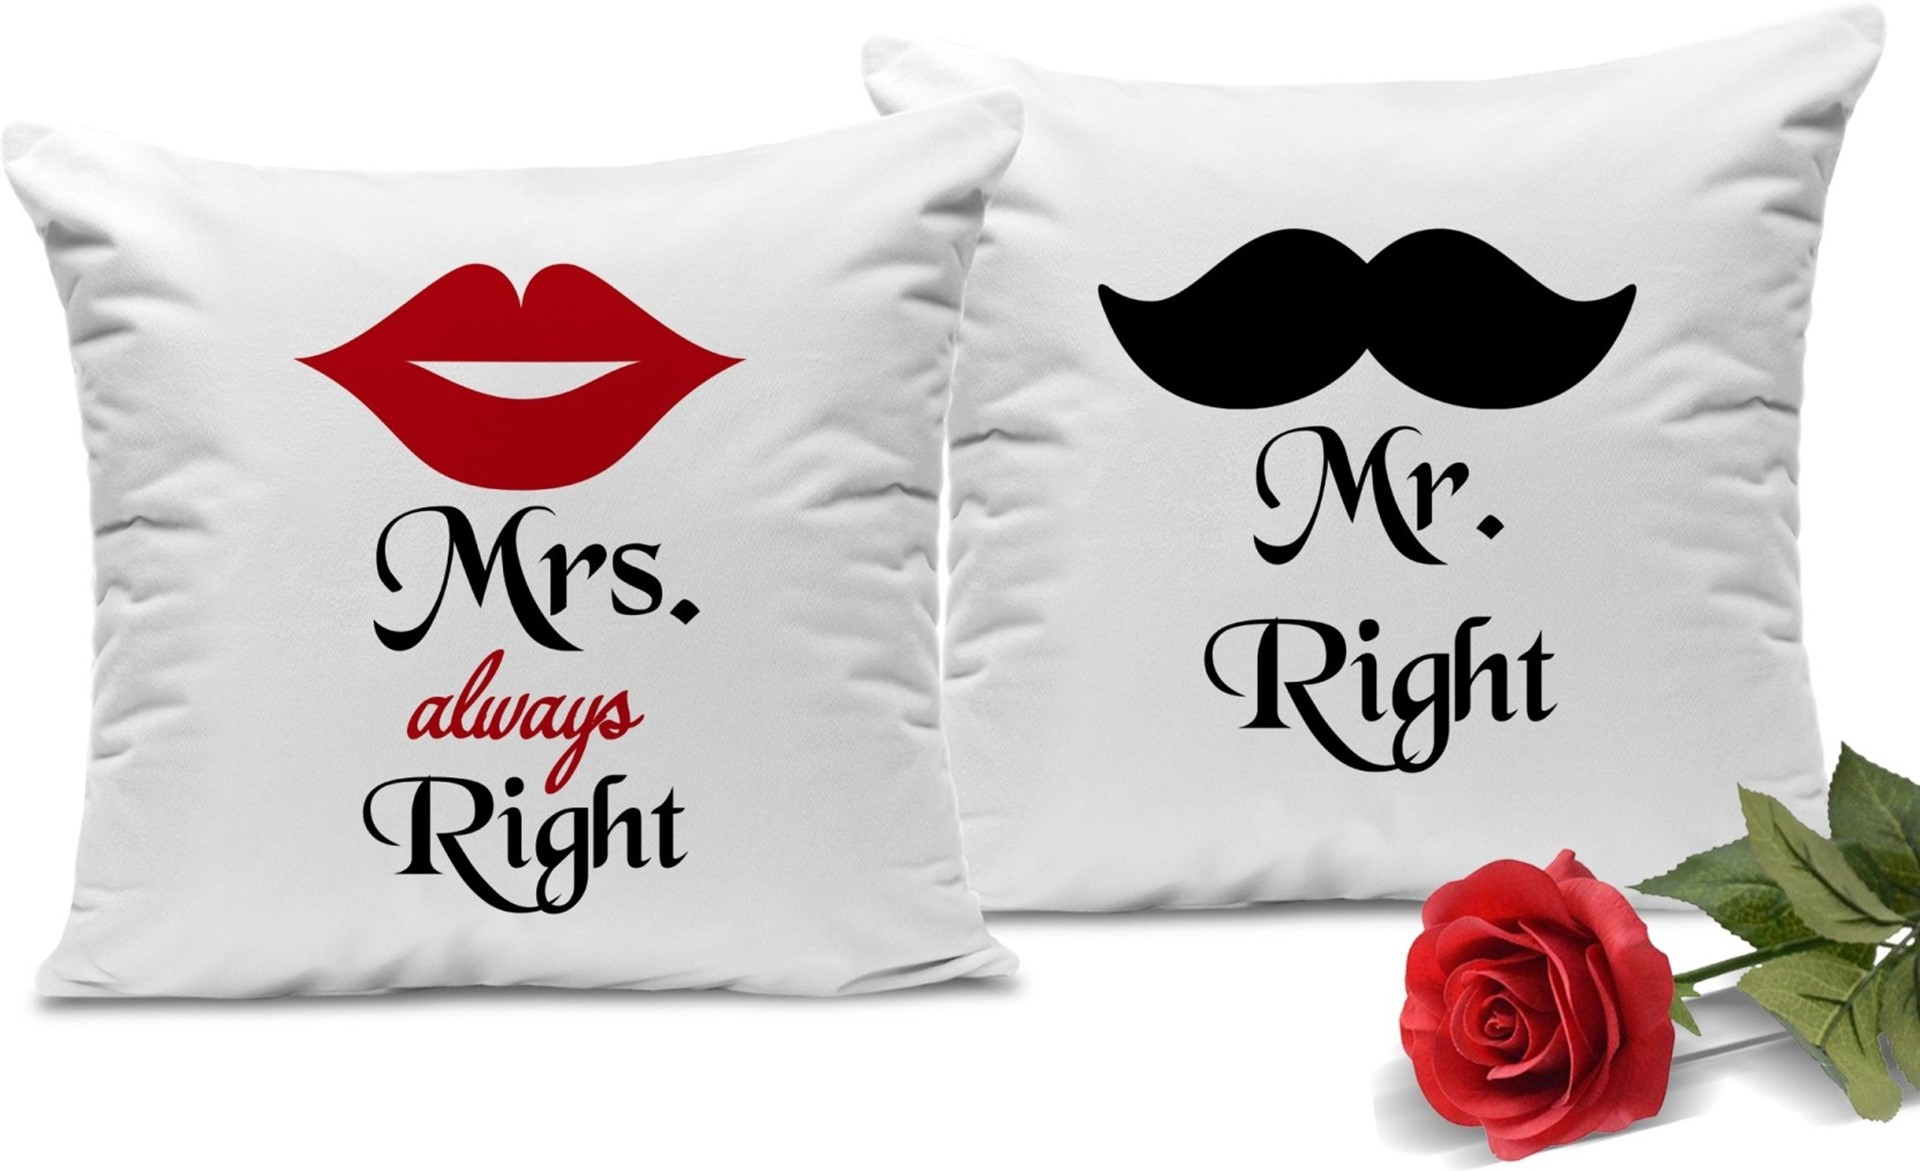 Mr. Right and Mrs. Always Right - PACK OF 2 PRINTED CUSHION COVERS 13.5x13.5 inch